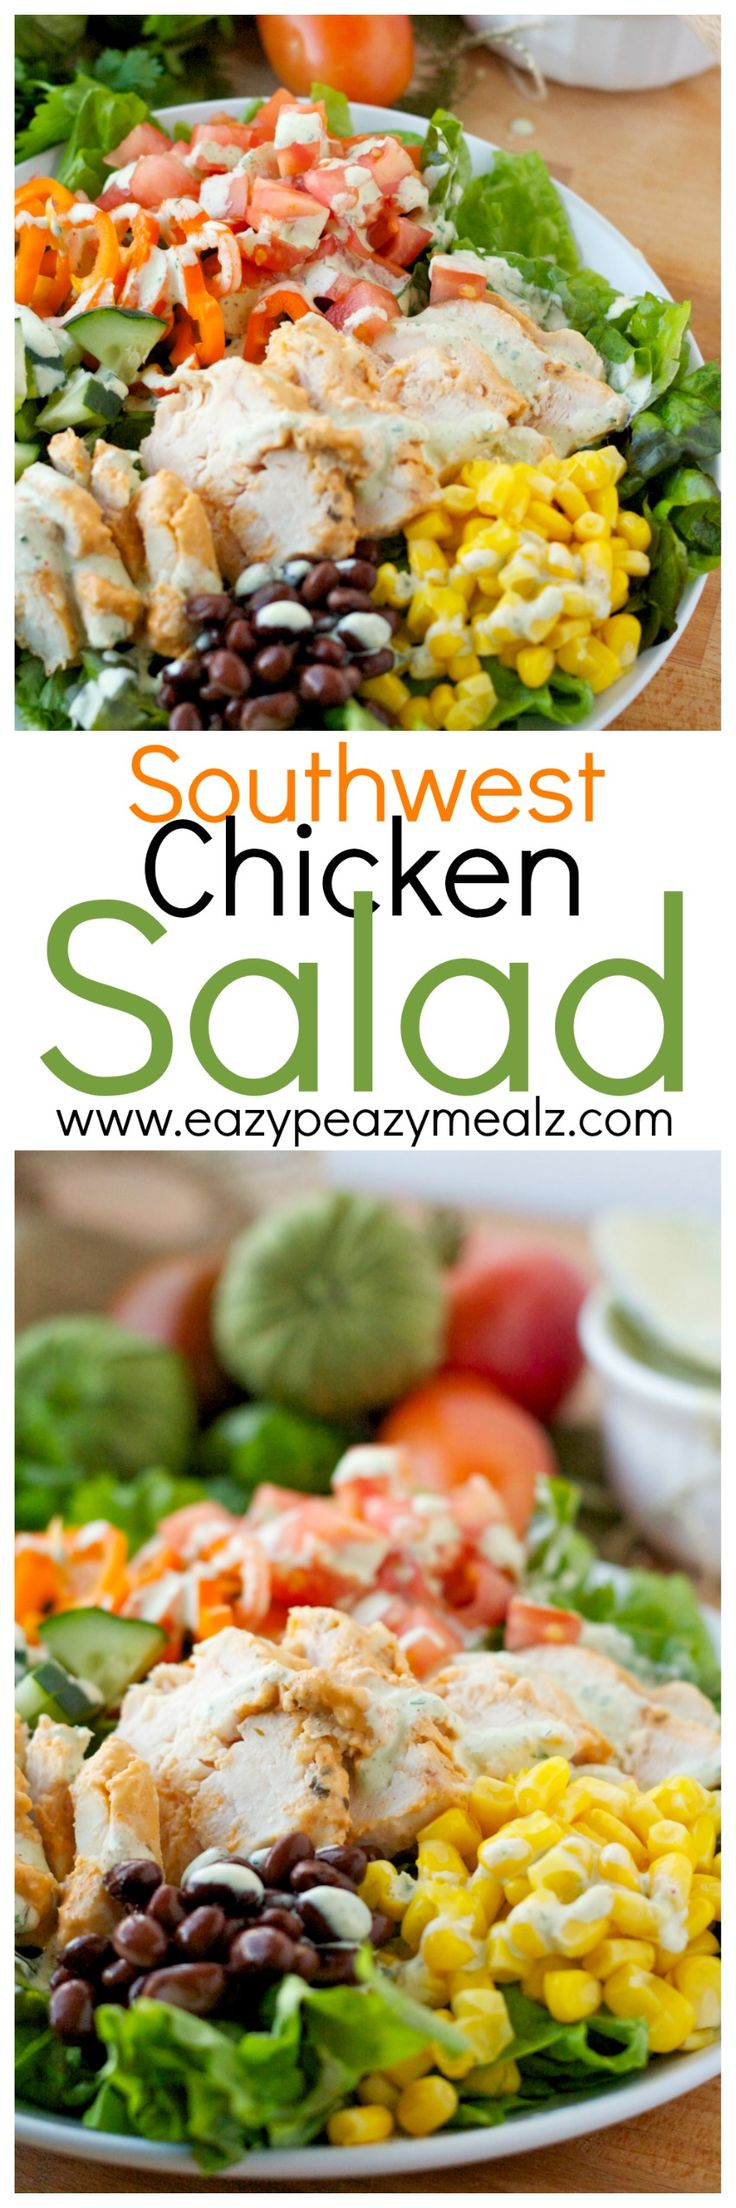 Southwest Chicken Salad ~ packed with everything delicious and topped with marinated chicken! | EazyPeazyMealz.com